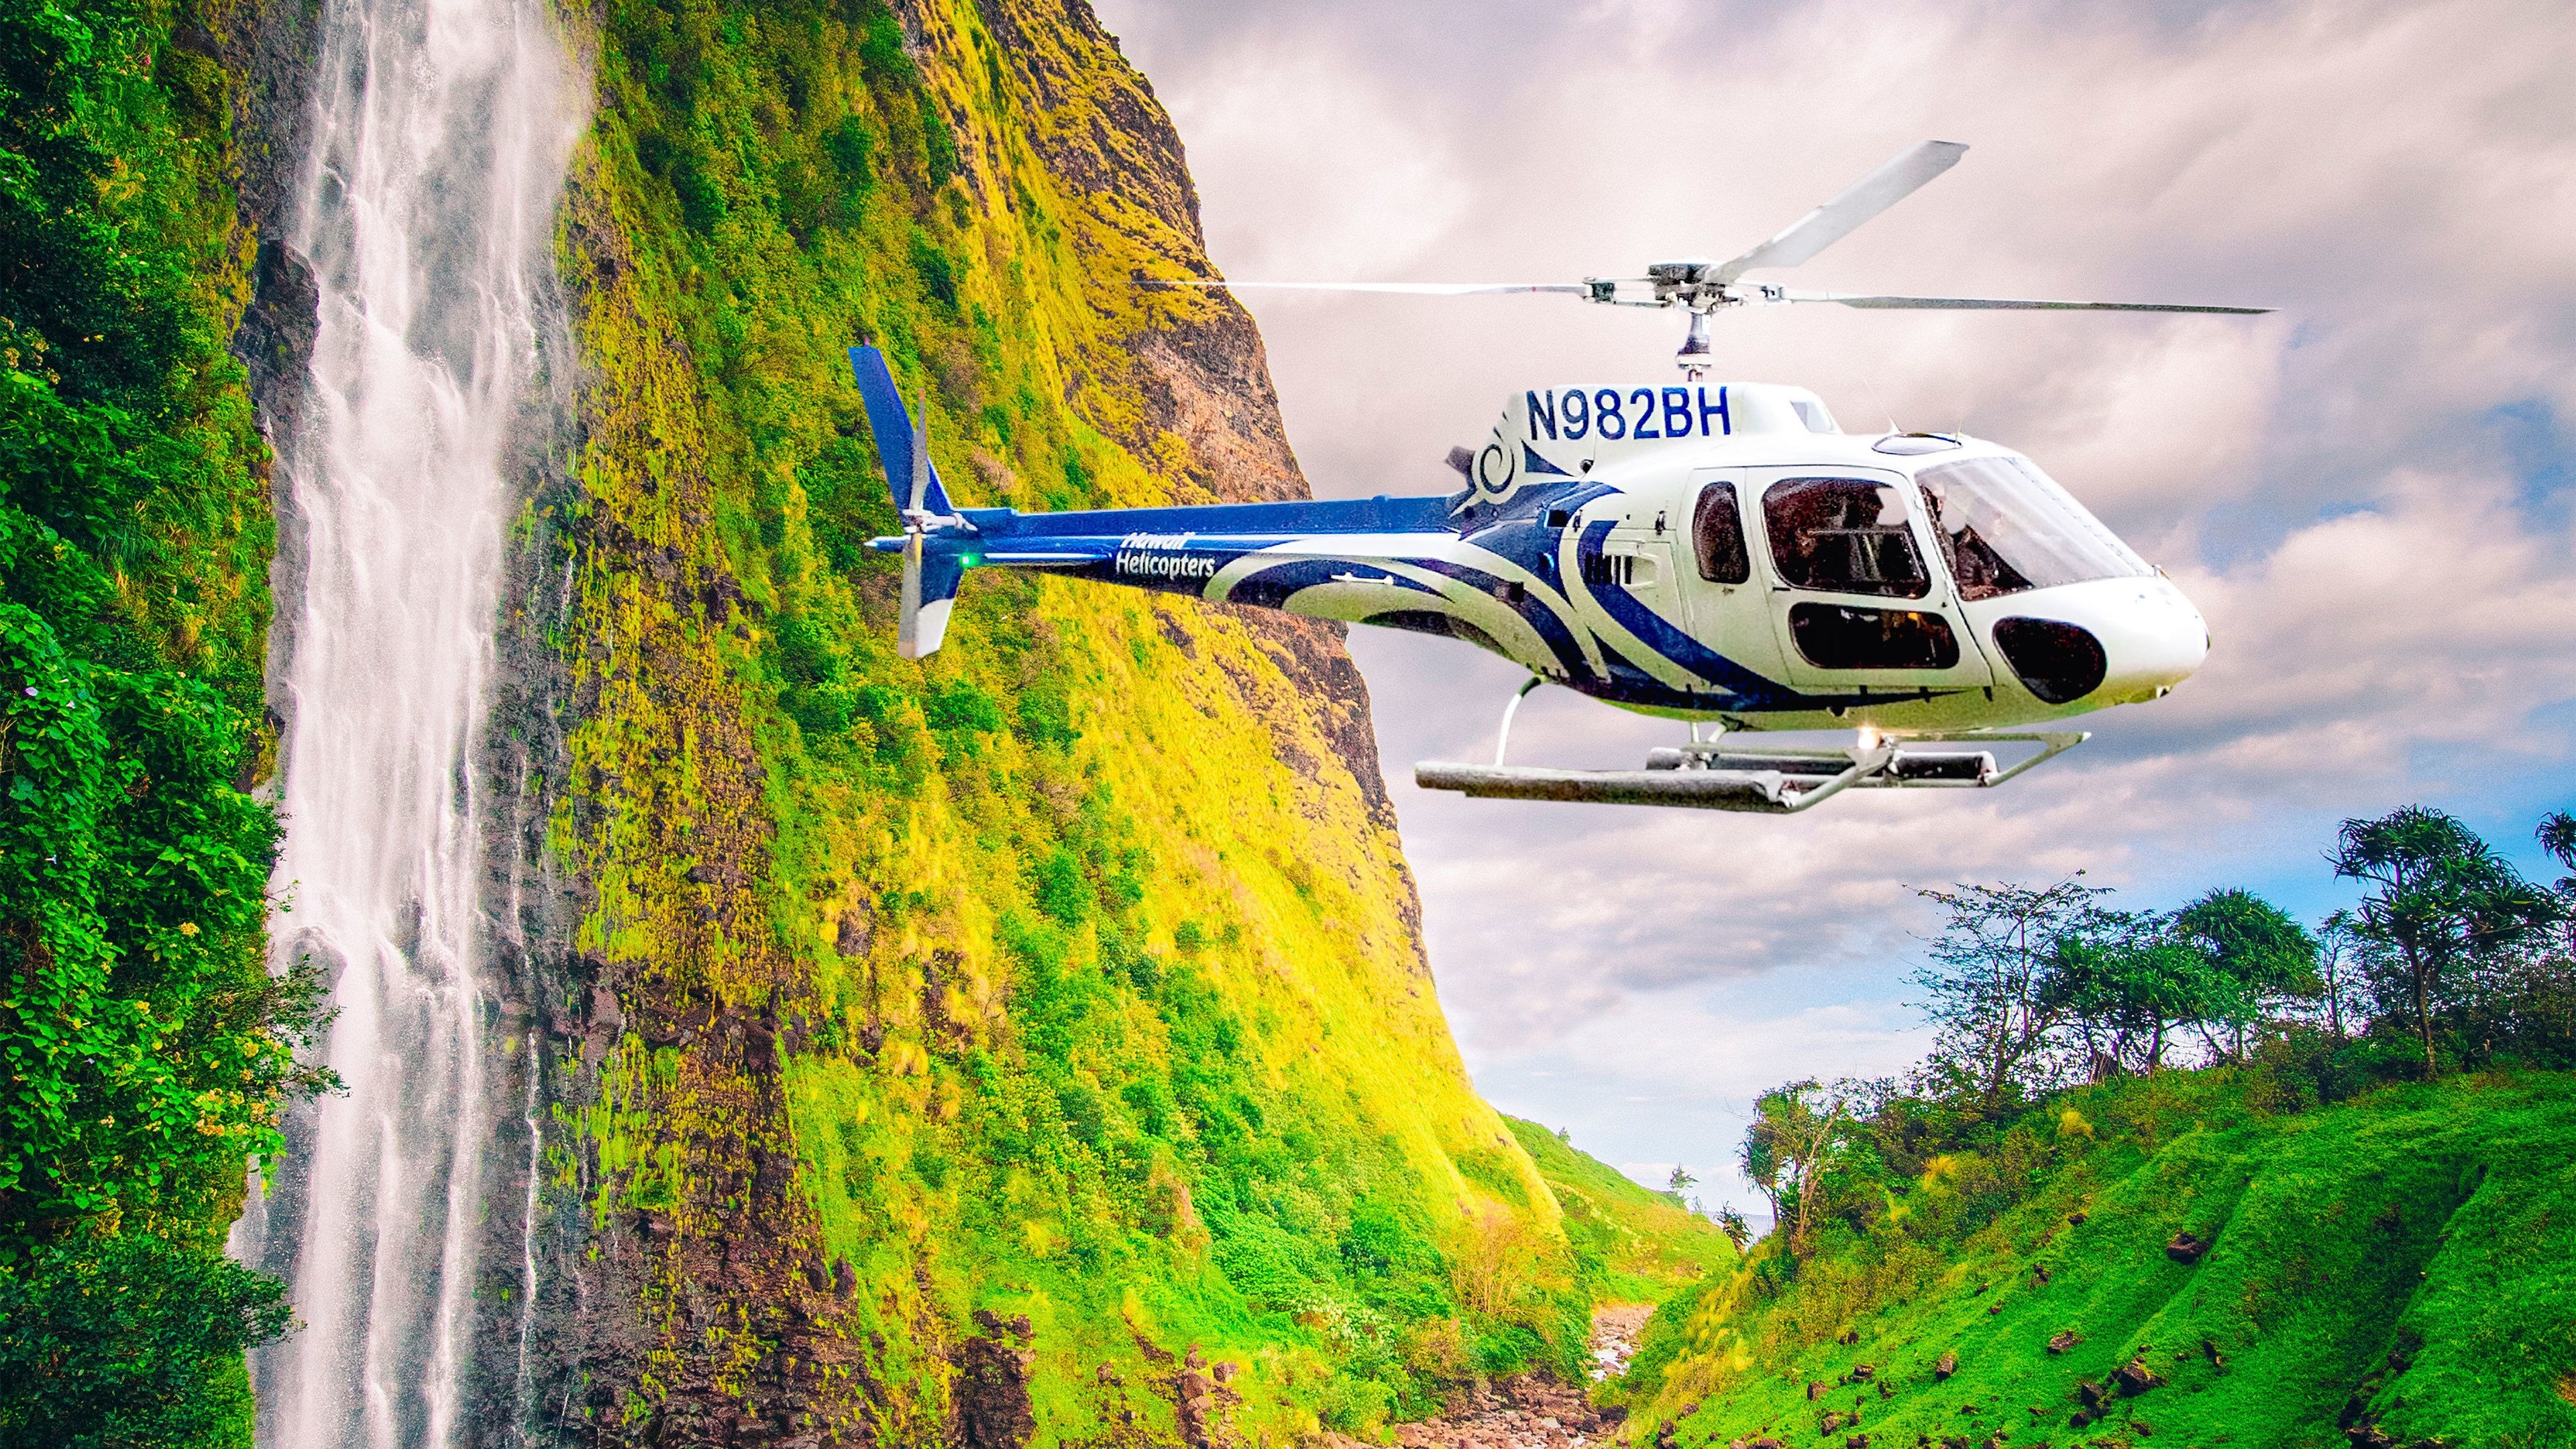 Helicopter flying by a waterfall in Hawaii